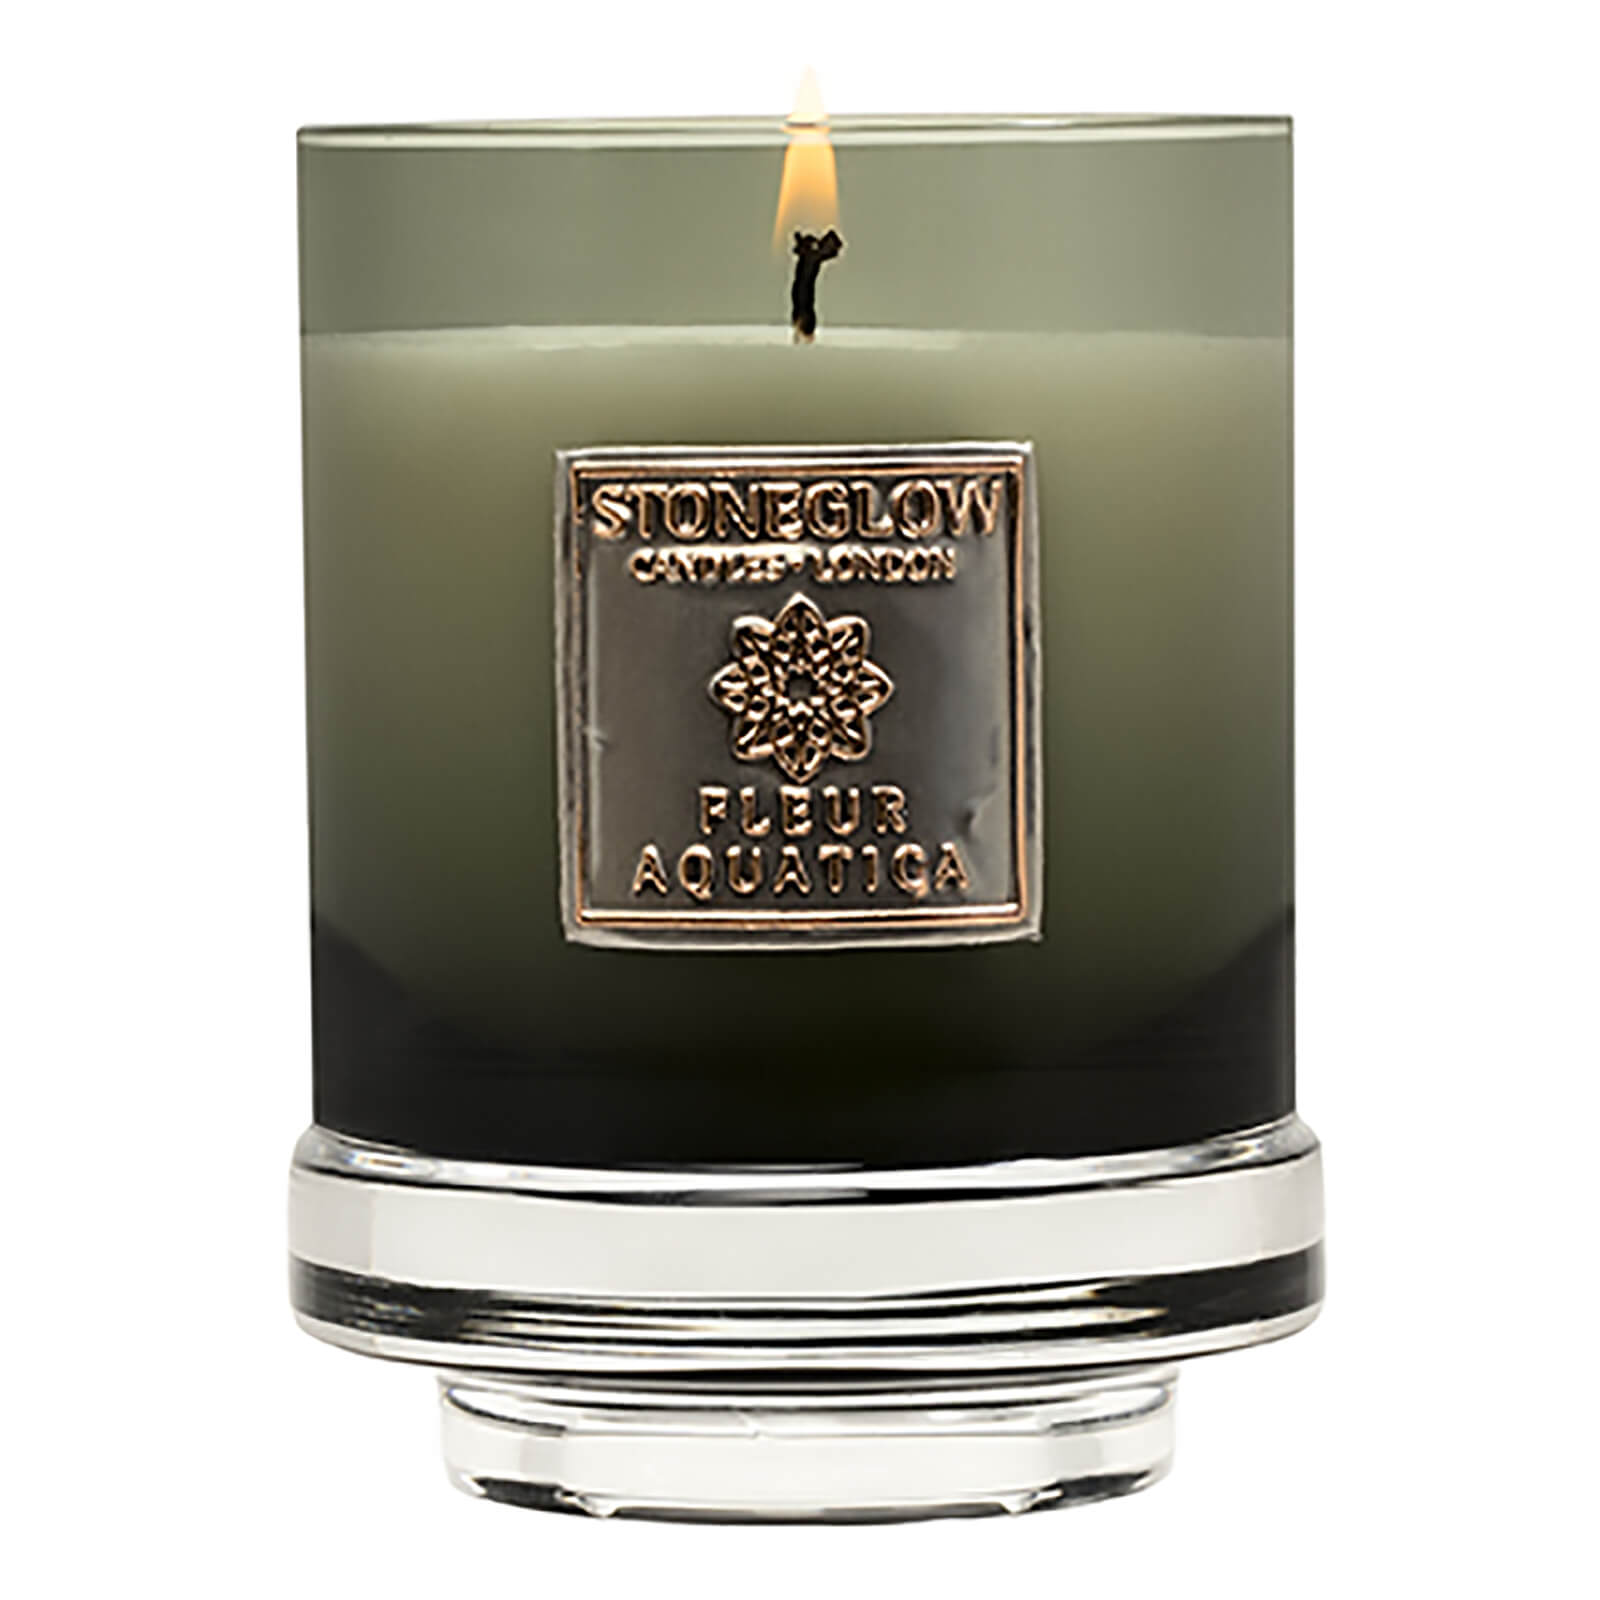 Stoneglow Metallique Collection Fleur Aquatica Candle